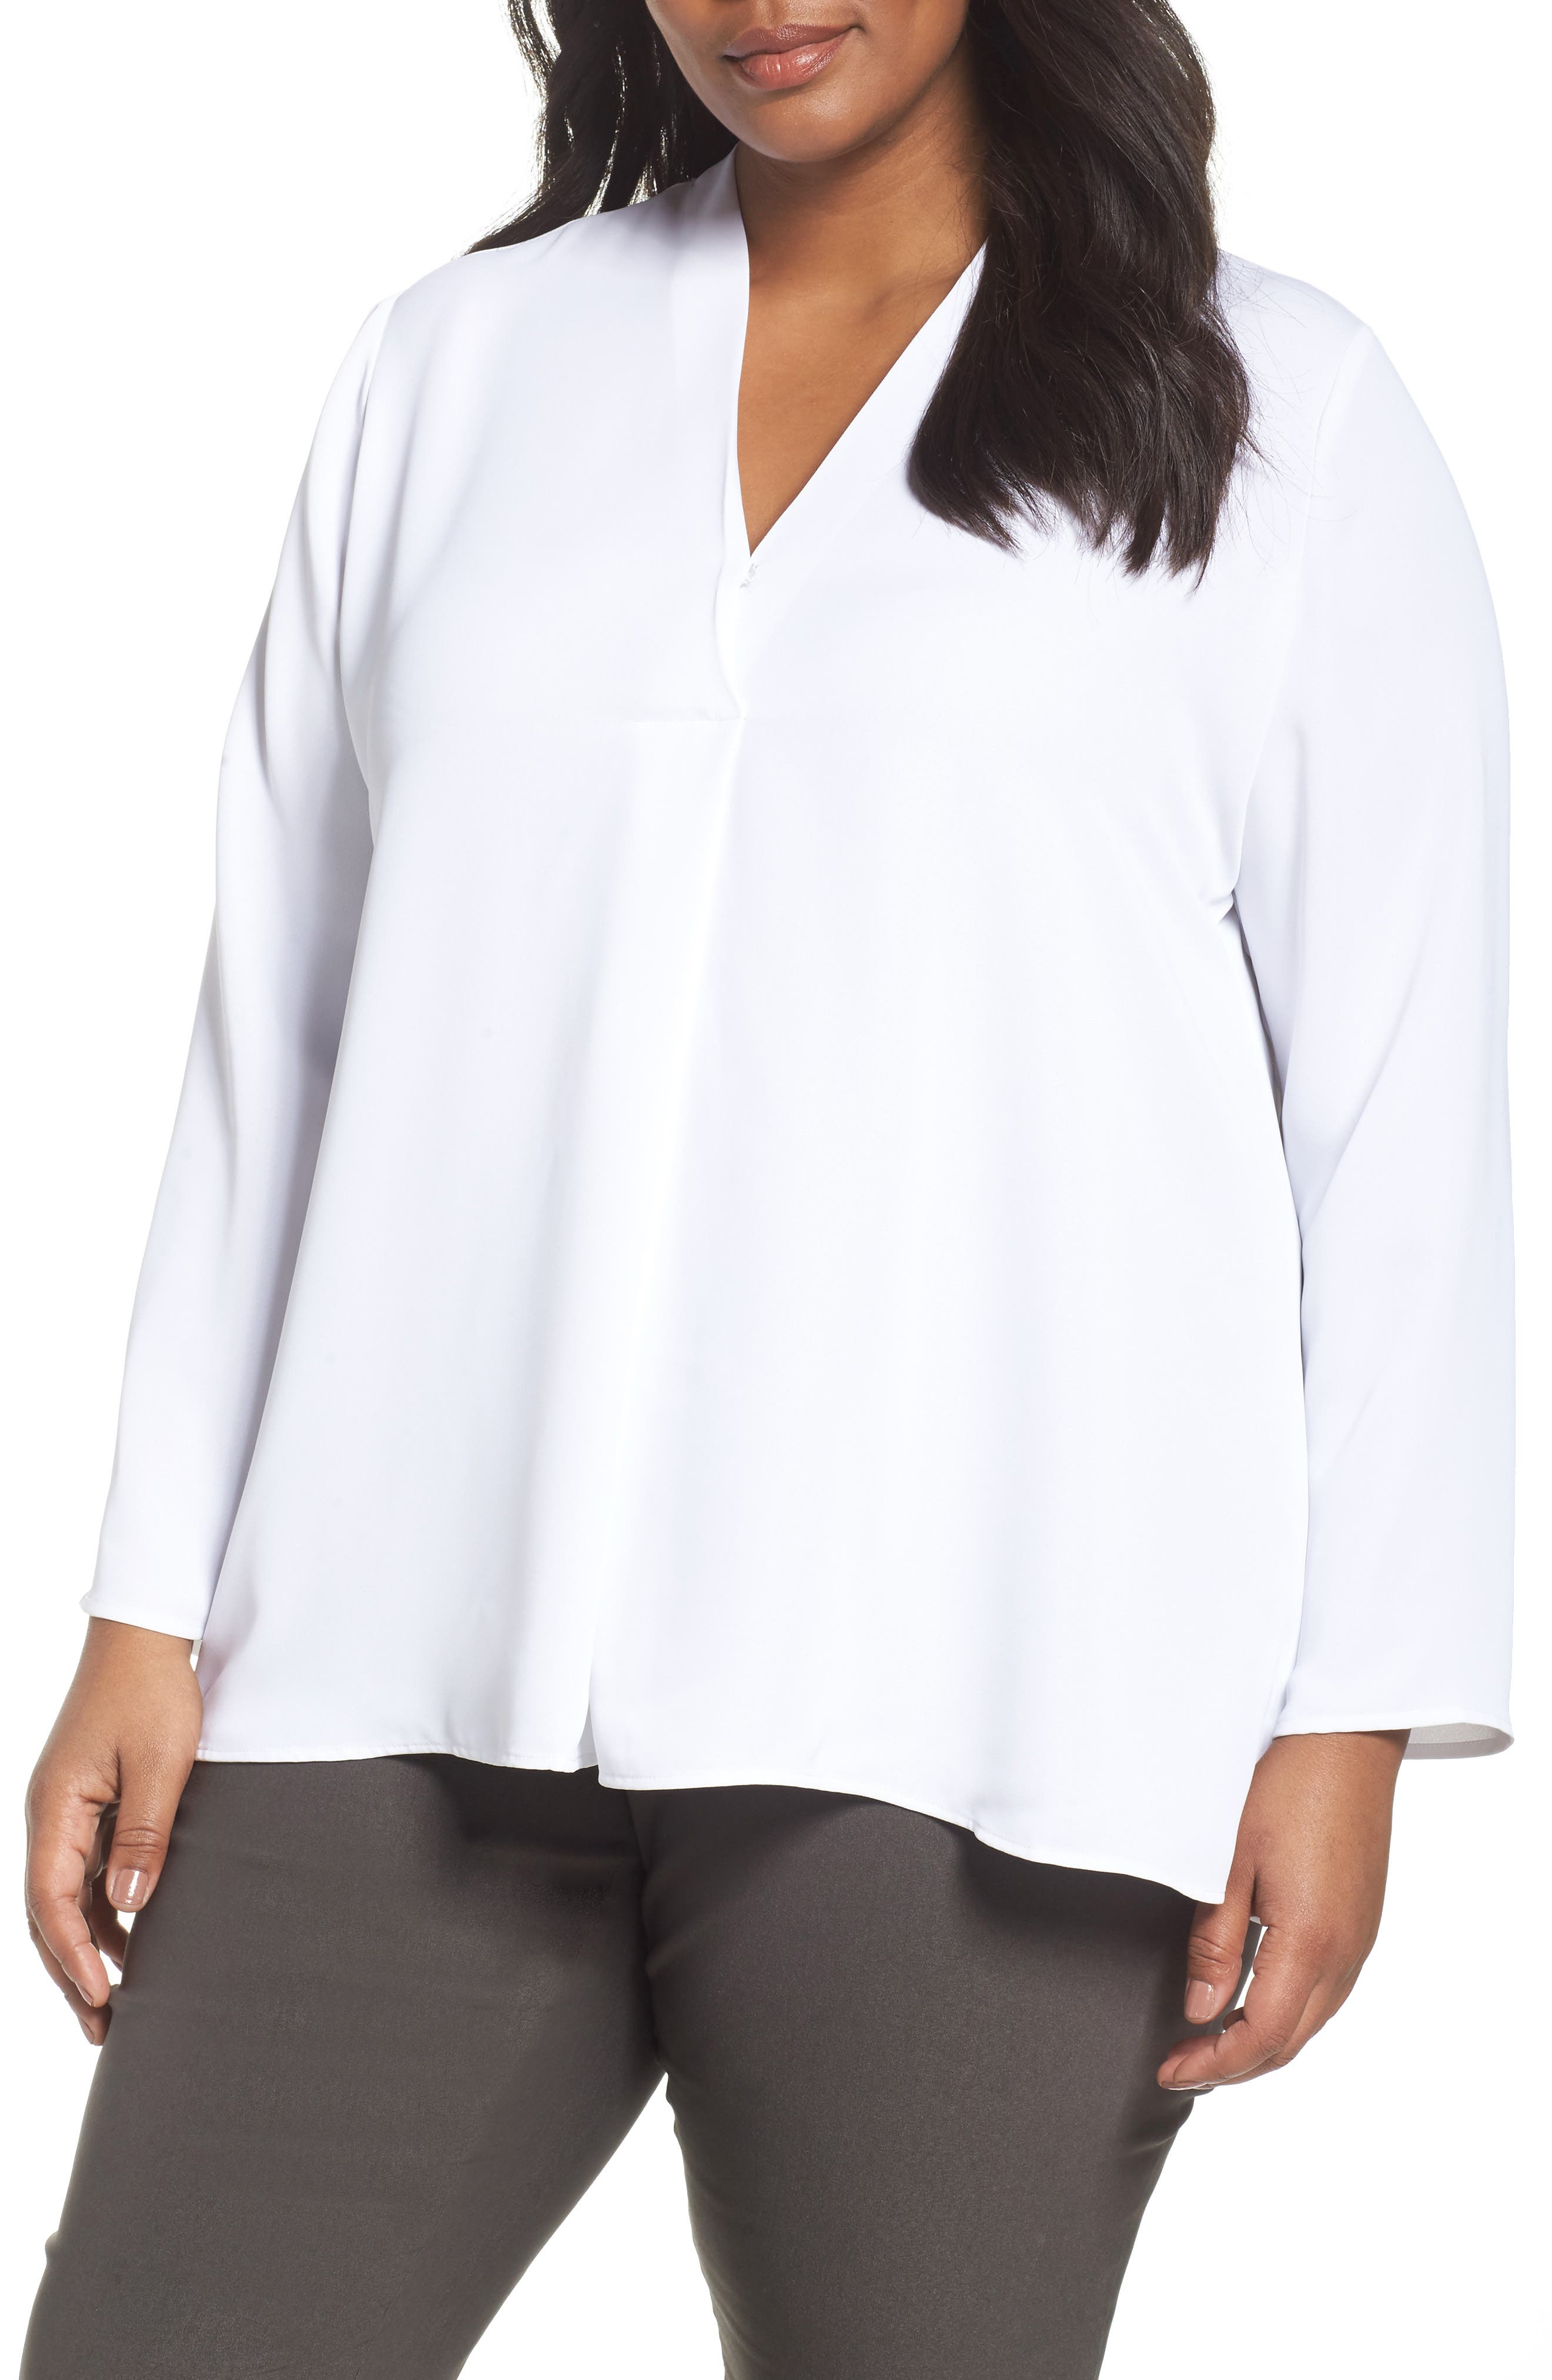 Alternate Image 1 Selected - NIC+ZOE Majestic Matte Satin Blouse (Plus Size)